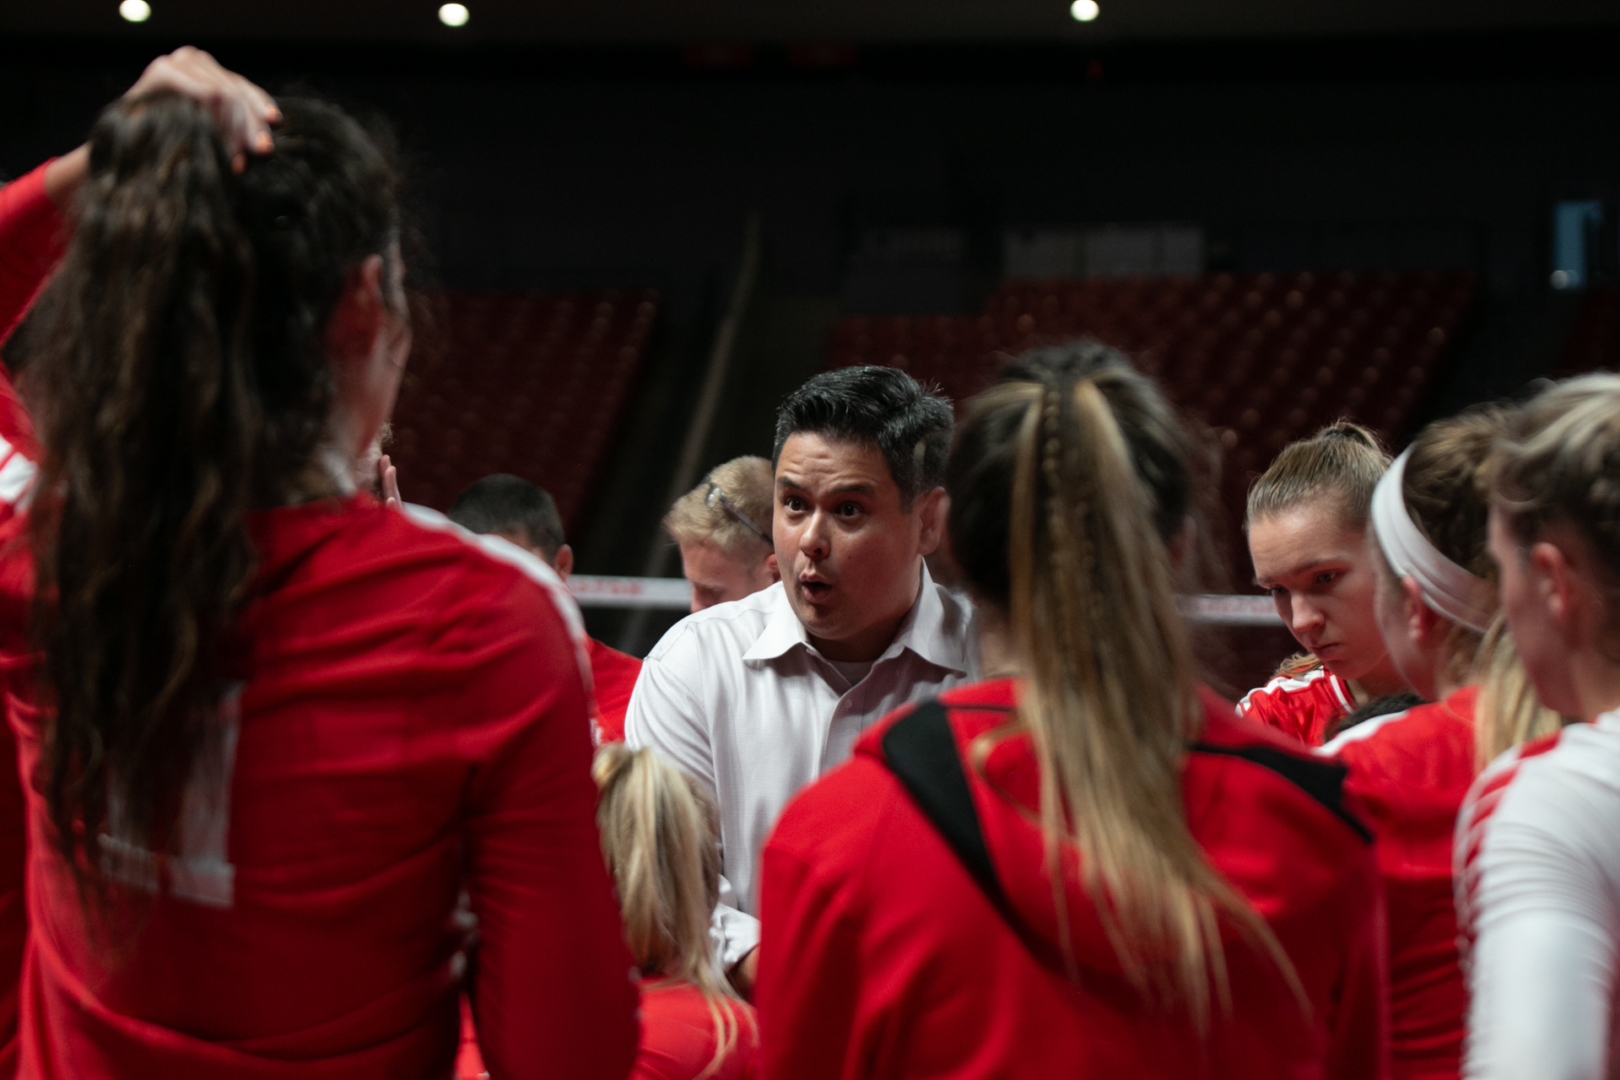 Head coach David Rehr turned a program down in the dumps into an American Athletic Conference contender, but he and the Cougars are still aiming for the national spotlight. | Kathryn Lenihan/The Cougar